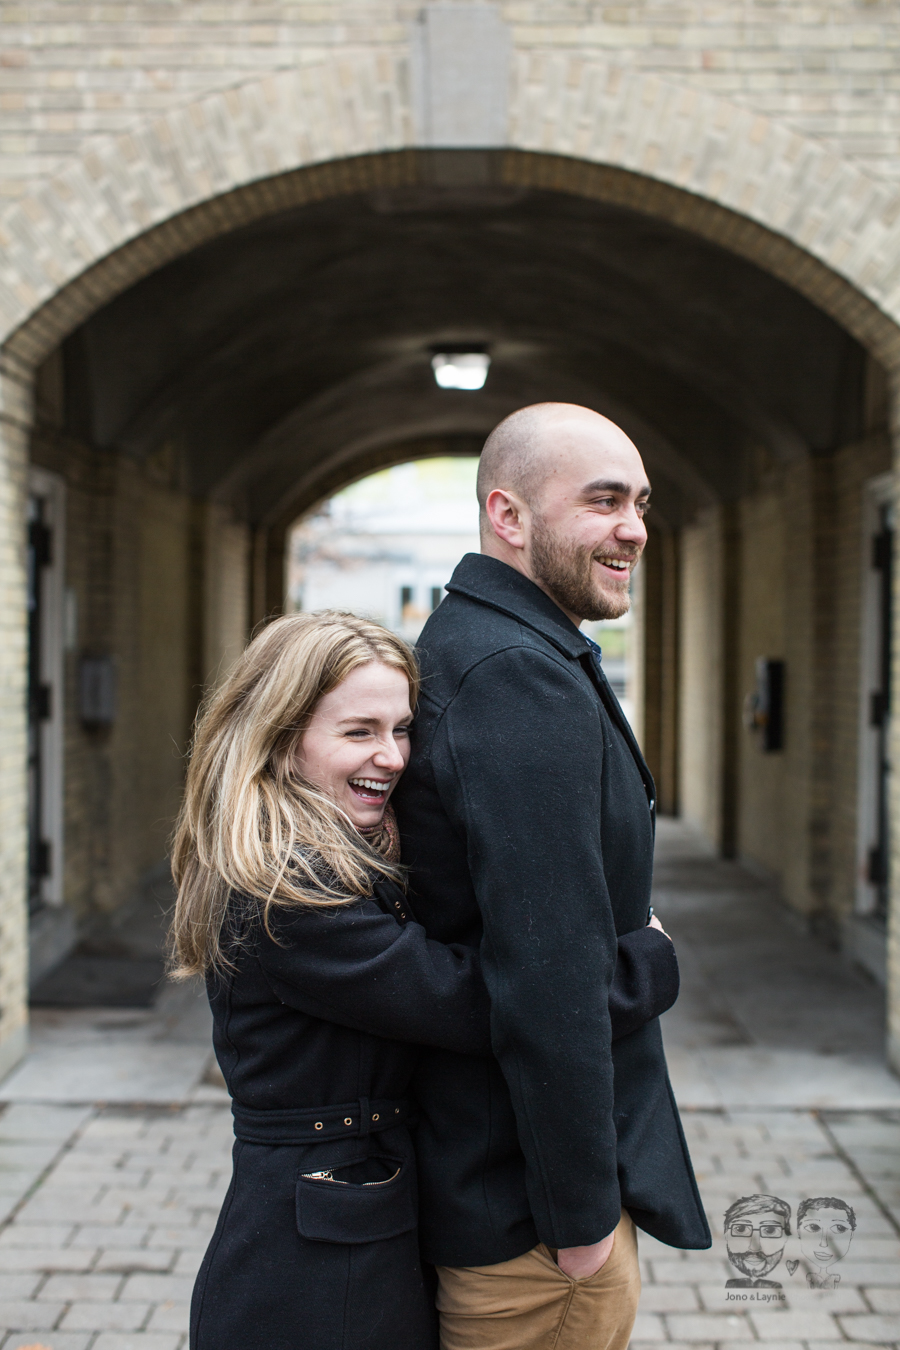 009University of Toronto e-session-Jono & Laynie Co.jpg